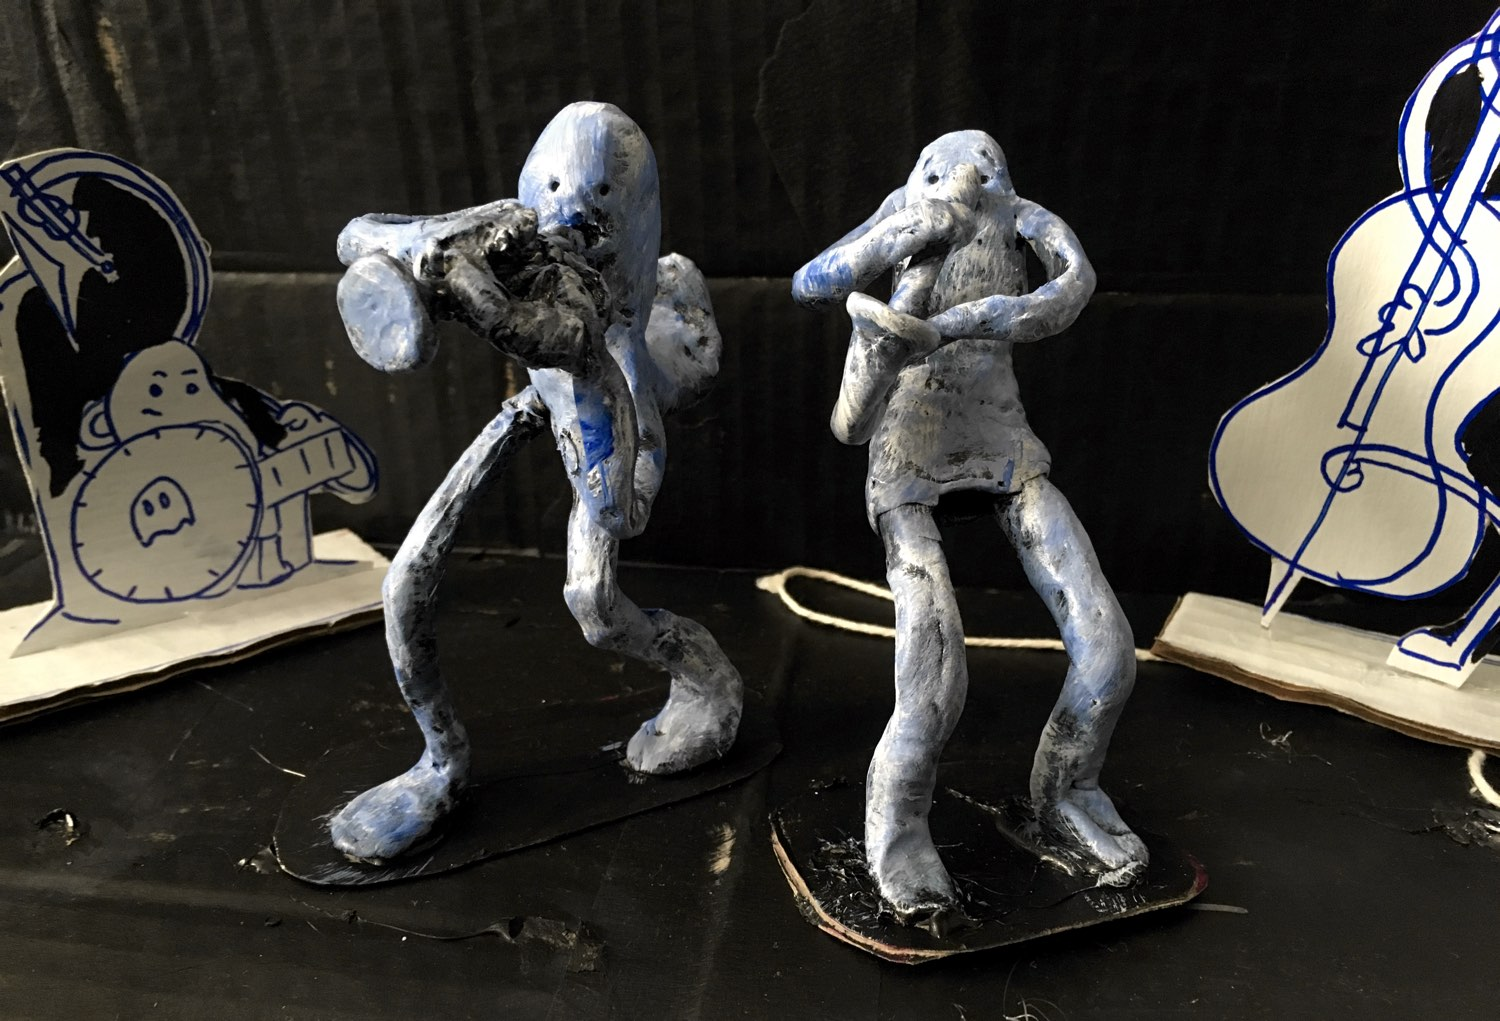 Two ghosts, sculpted out of clay and placed in the model